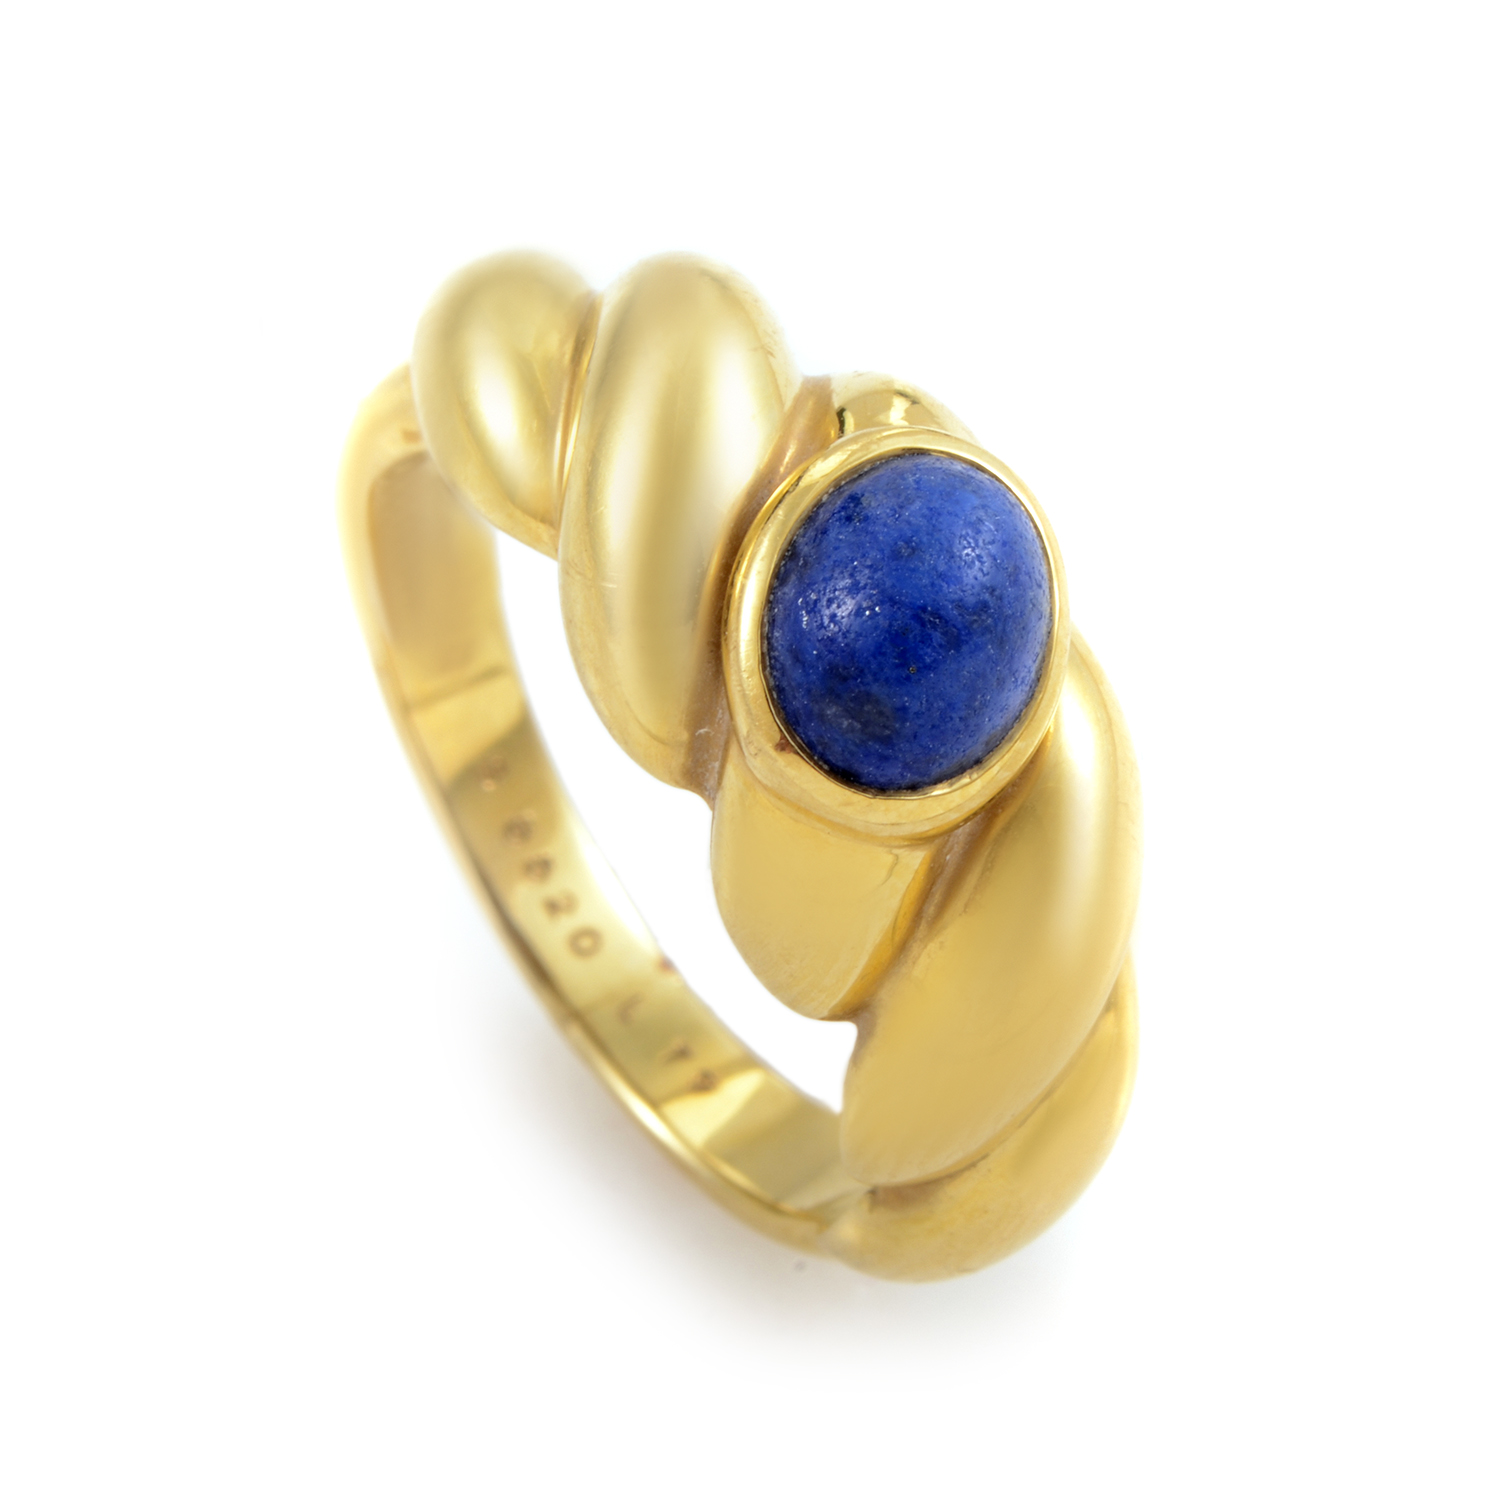 Van Cleef & Arpels 18K Yellow Gold Lapis Band Ring